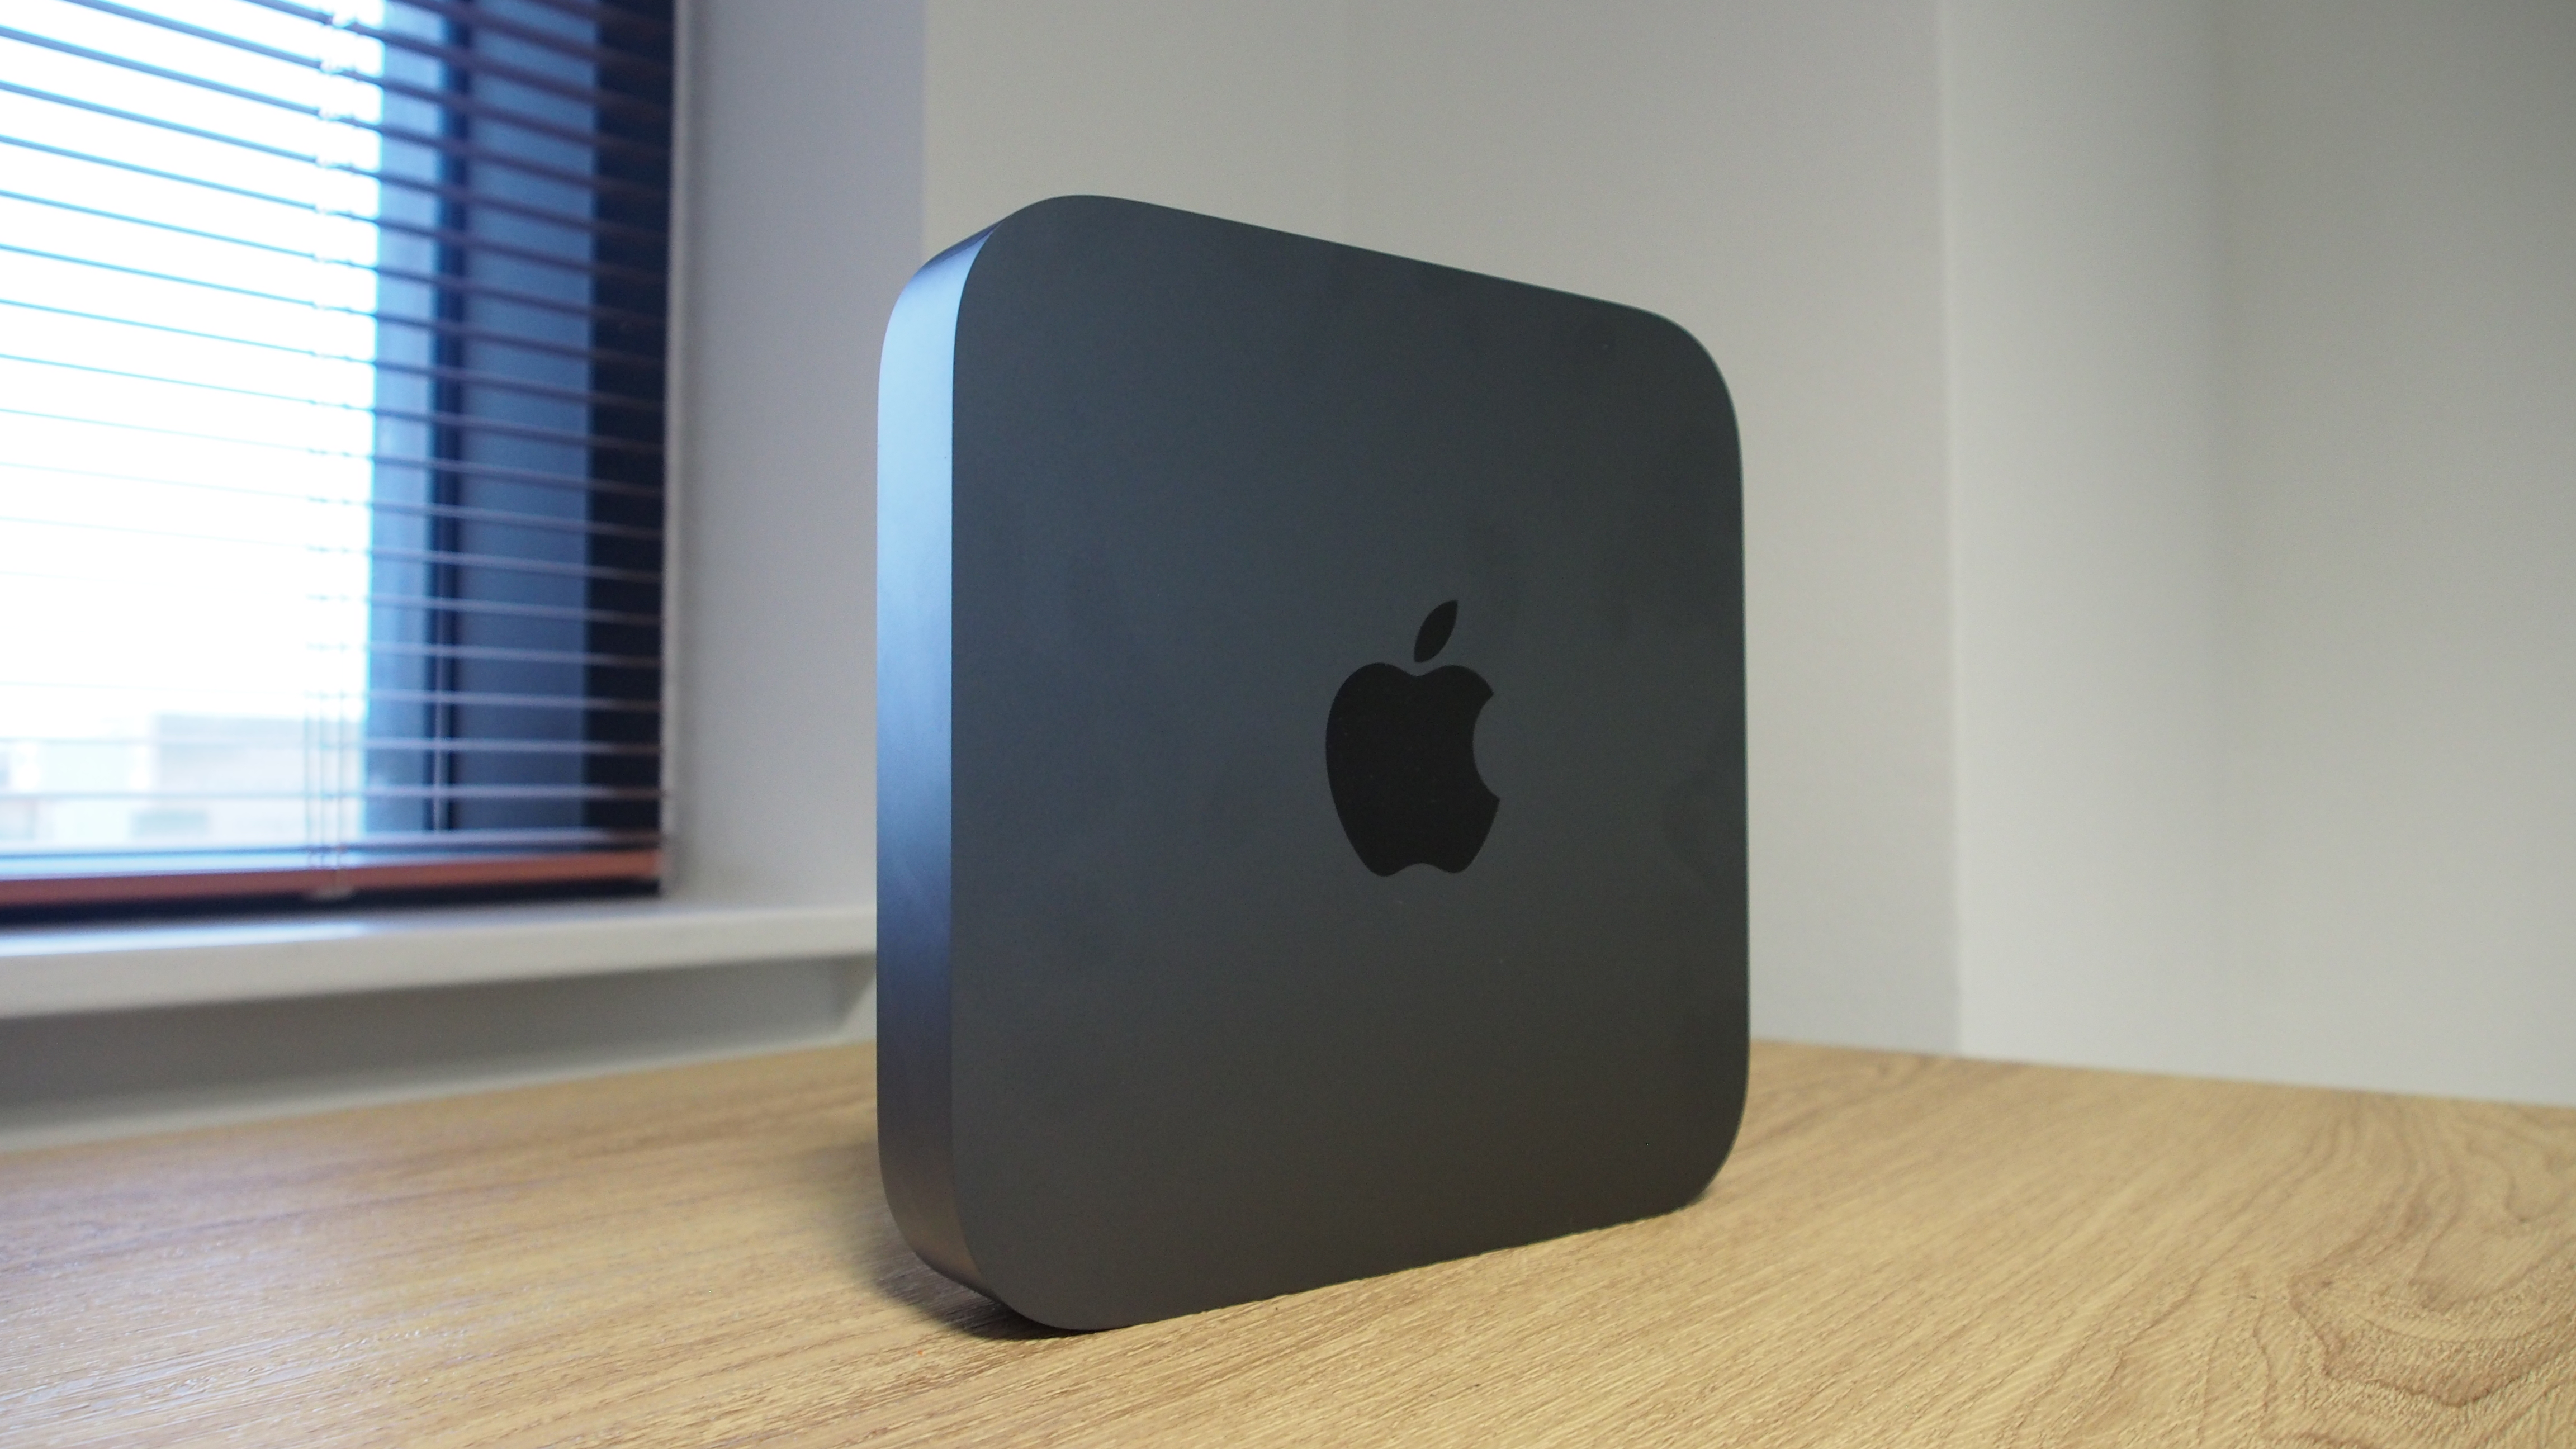 Mac Mini 2019: what we want to see